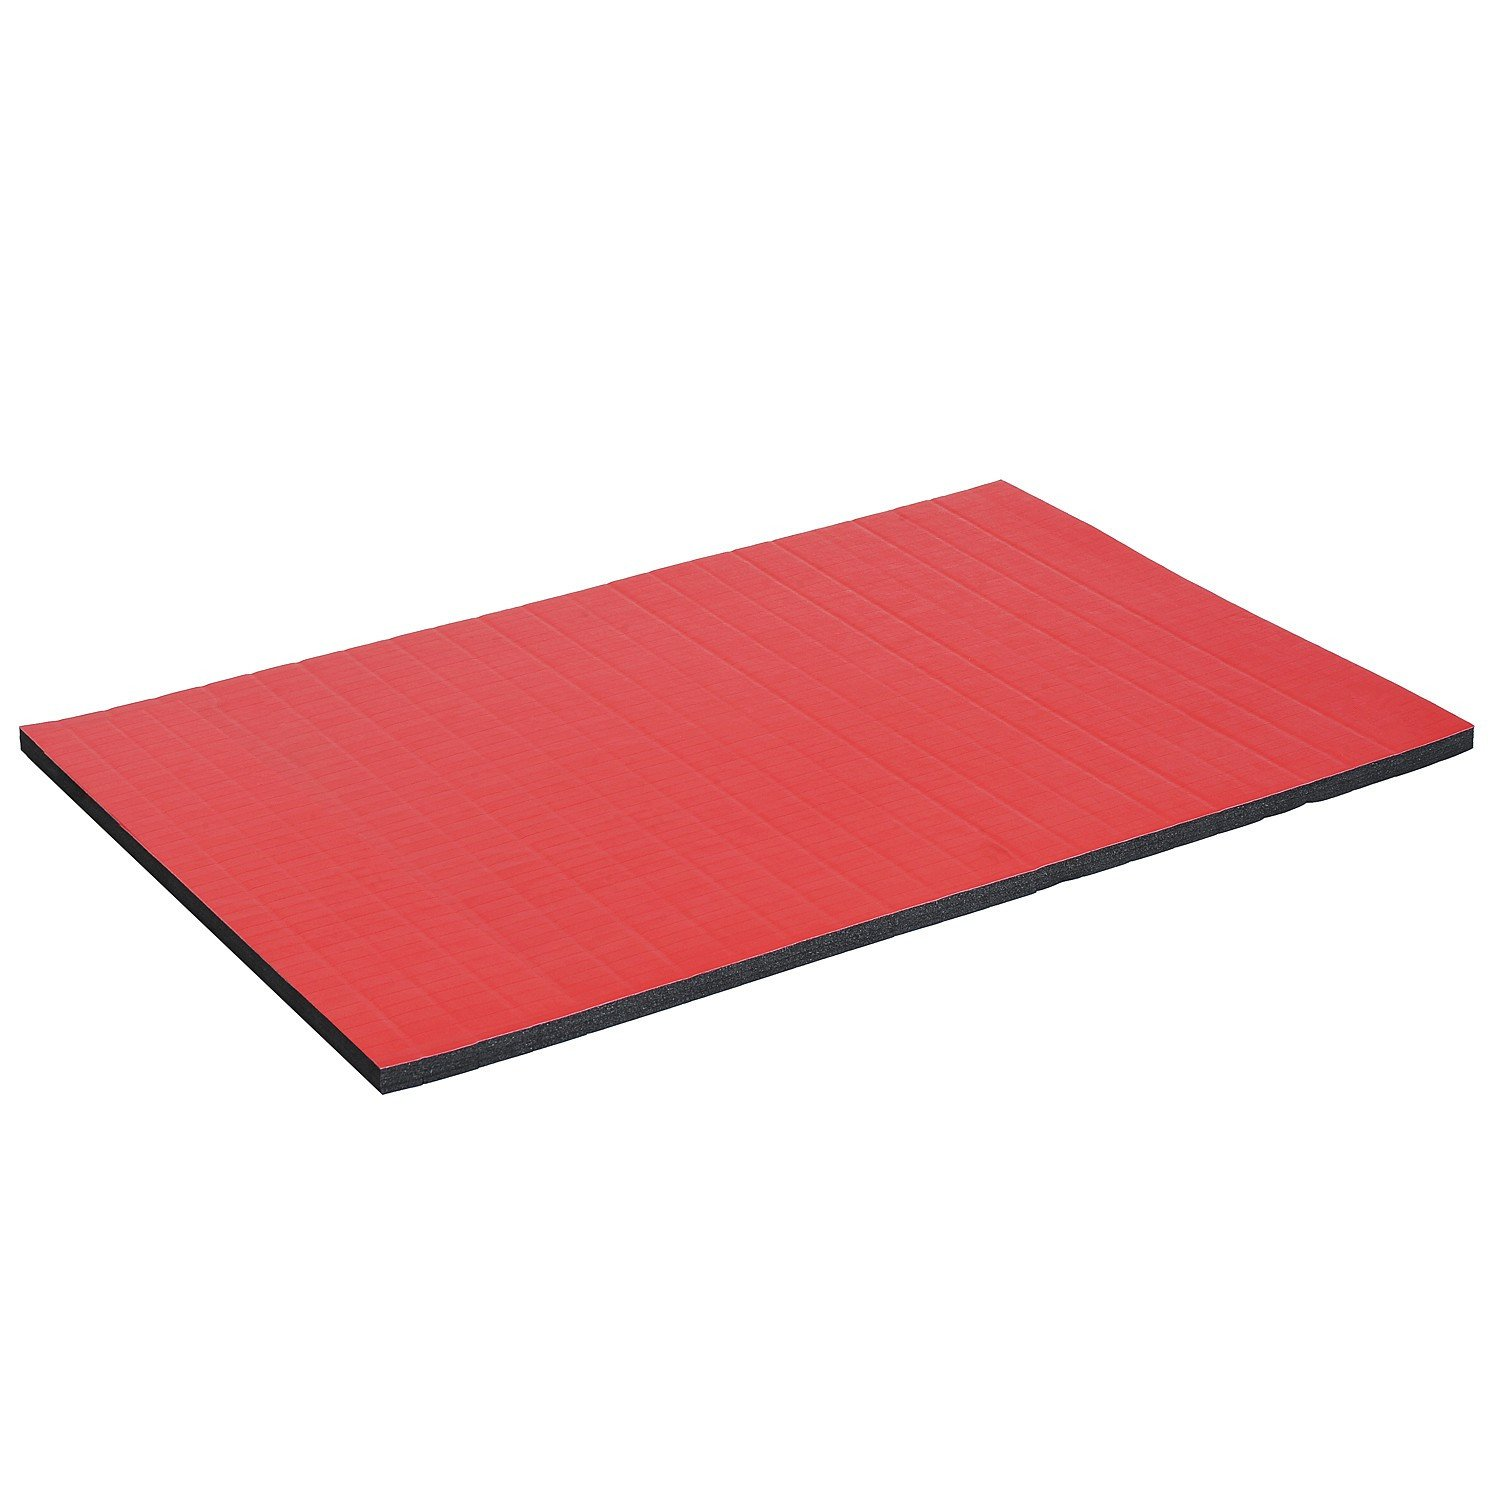 Multi-Use Yoga Wrestling Mat 6'x4' Roll Out Gymnastics Cheerleading Tumbling Gym Mat With Ebook by MRT SUPPLY